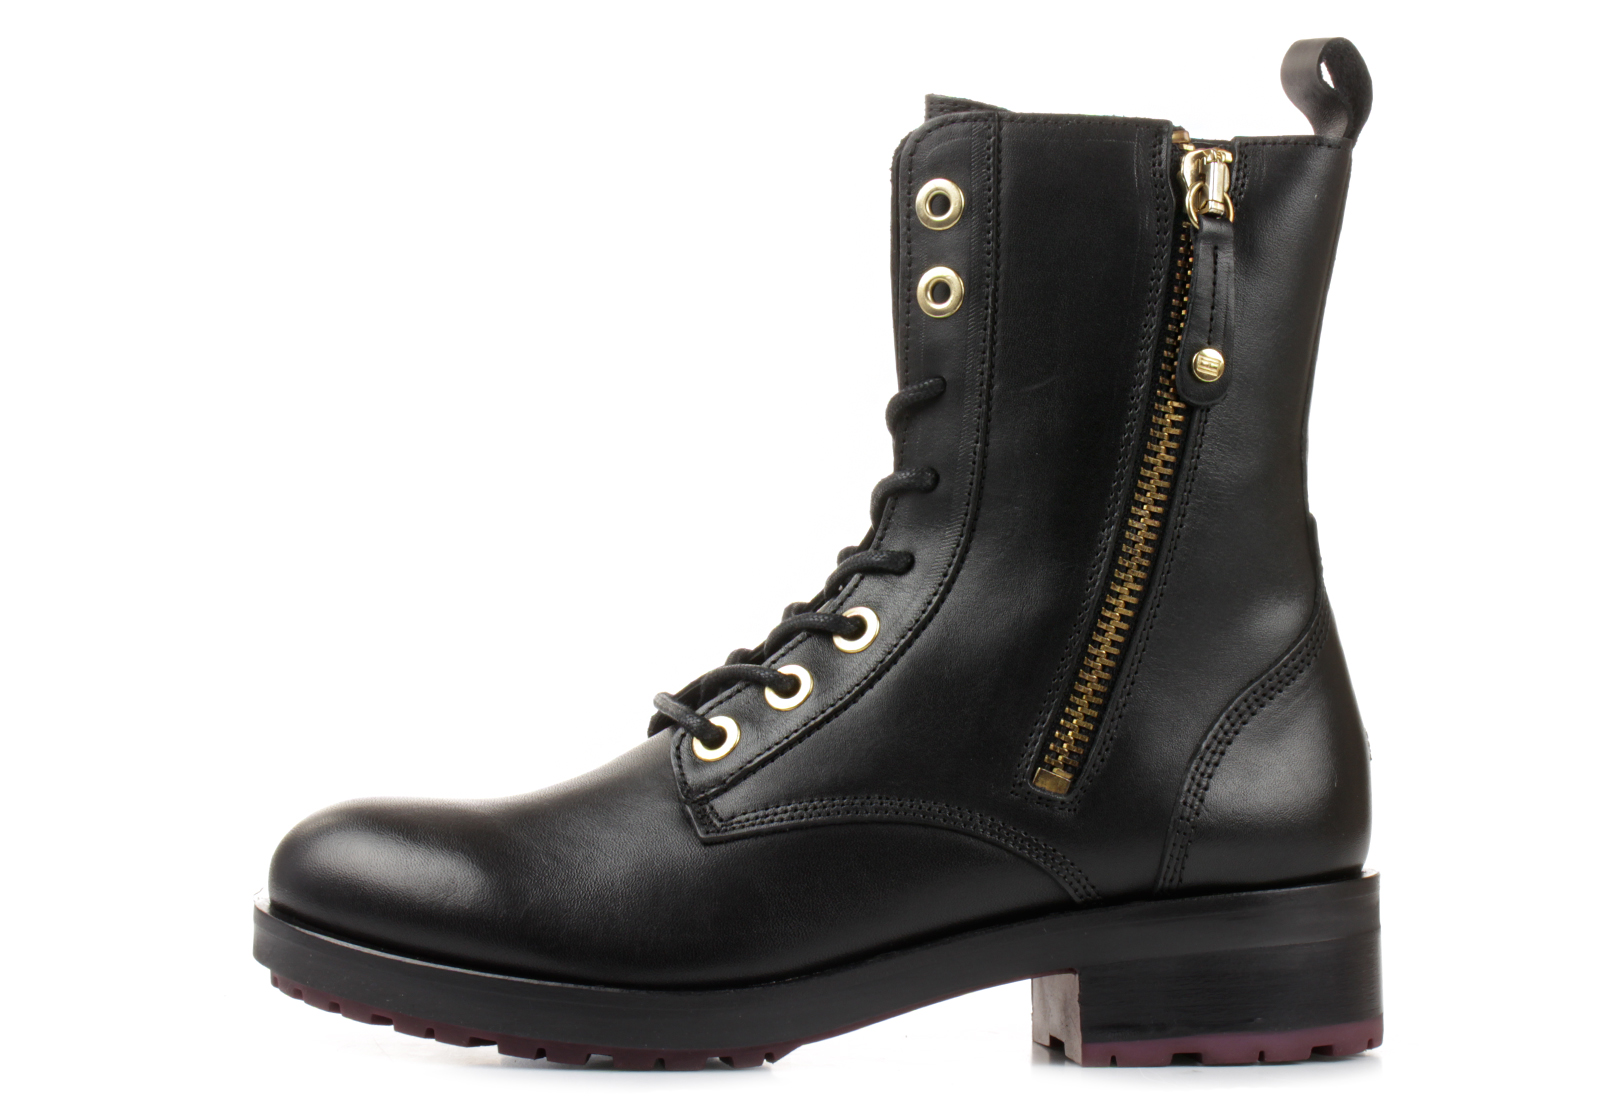 tommy hilfiger boots jill 1a 17f 1547 990 online shop for sneakers shoes and boots. Black Bedroom Furniture Sets. Home Design Ideas